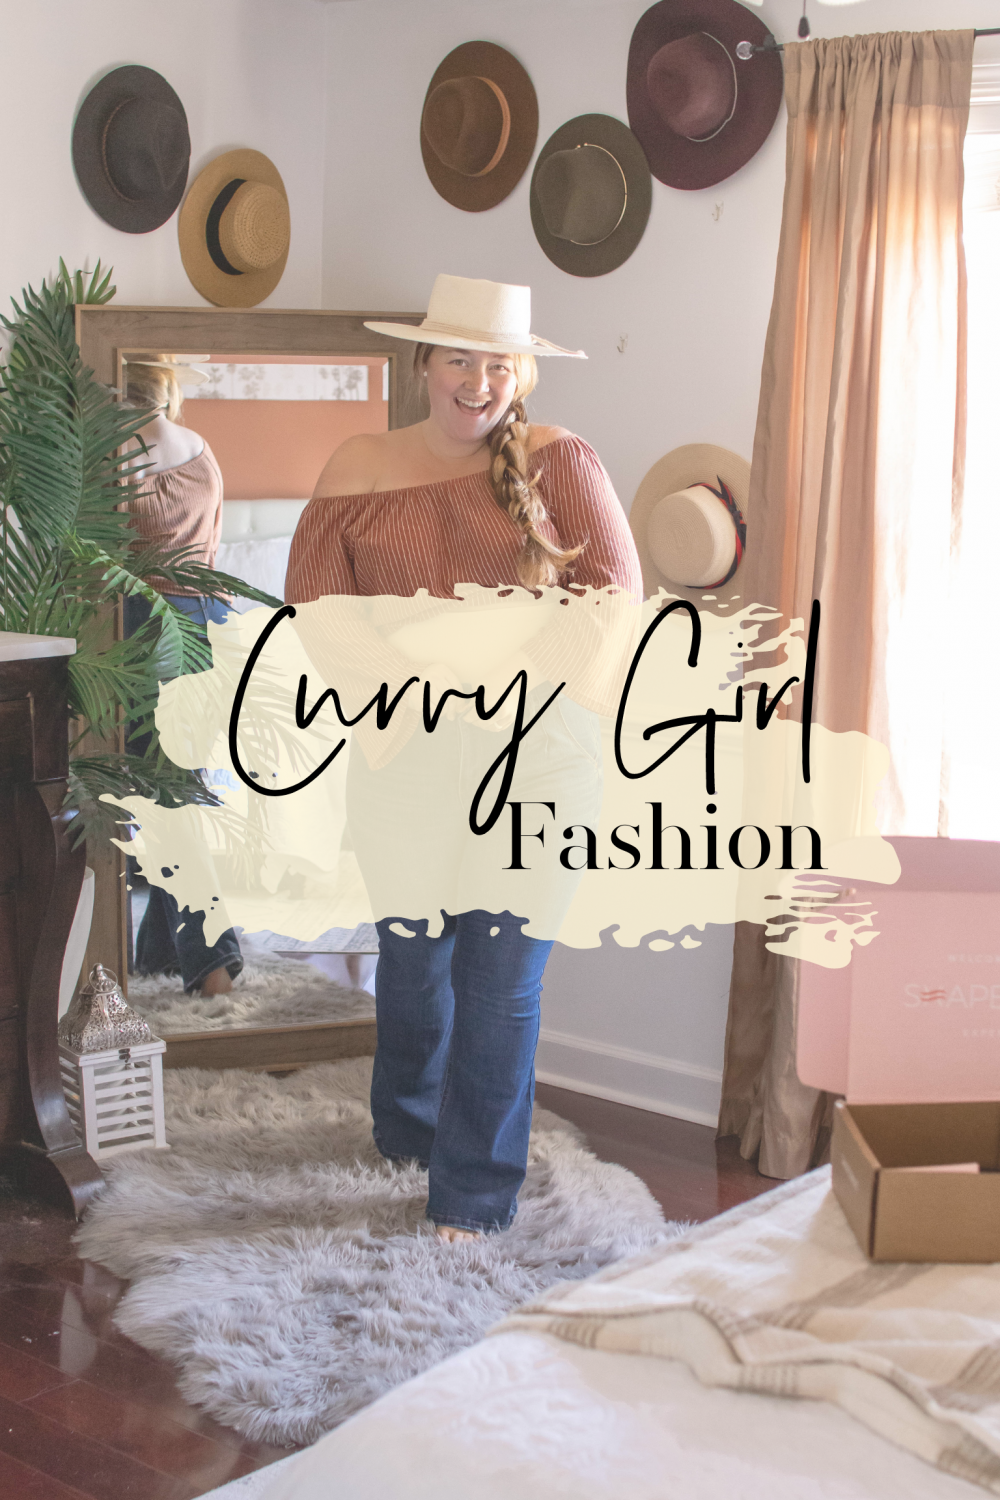 Curvy Girl Fashion Slider